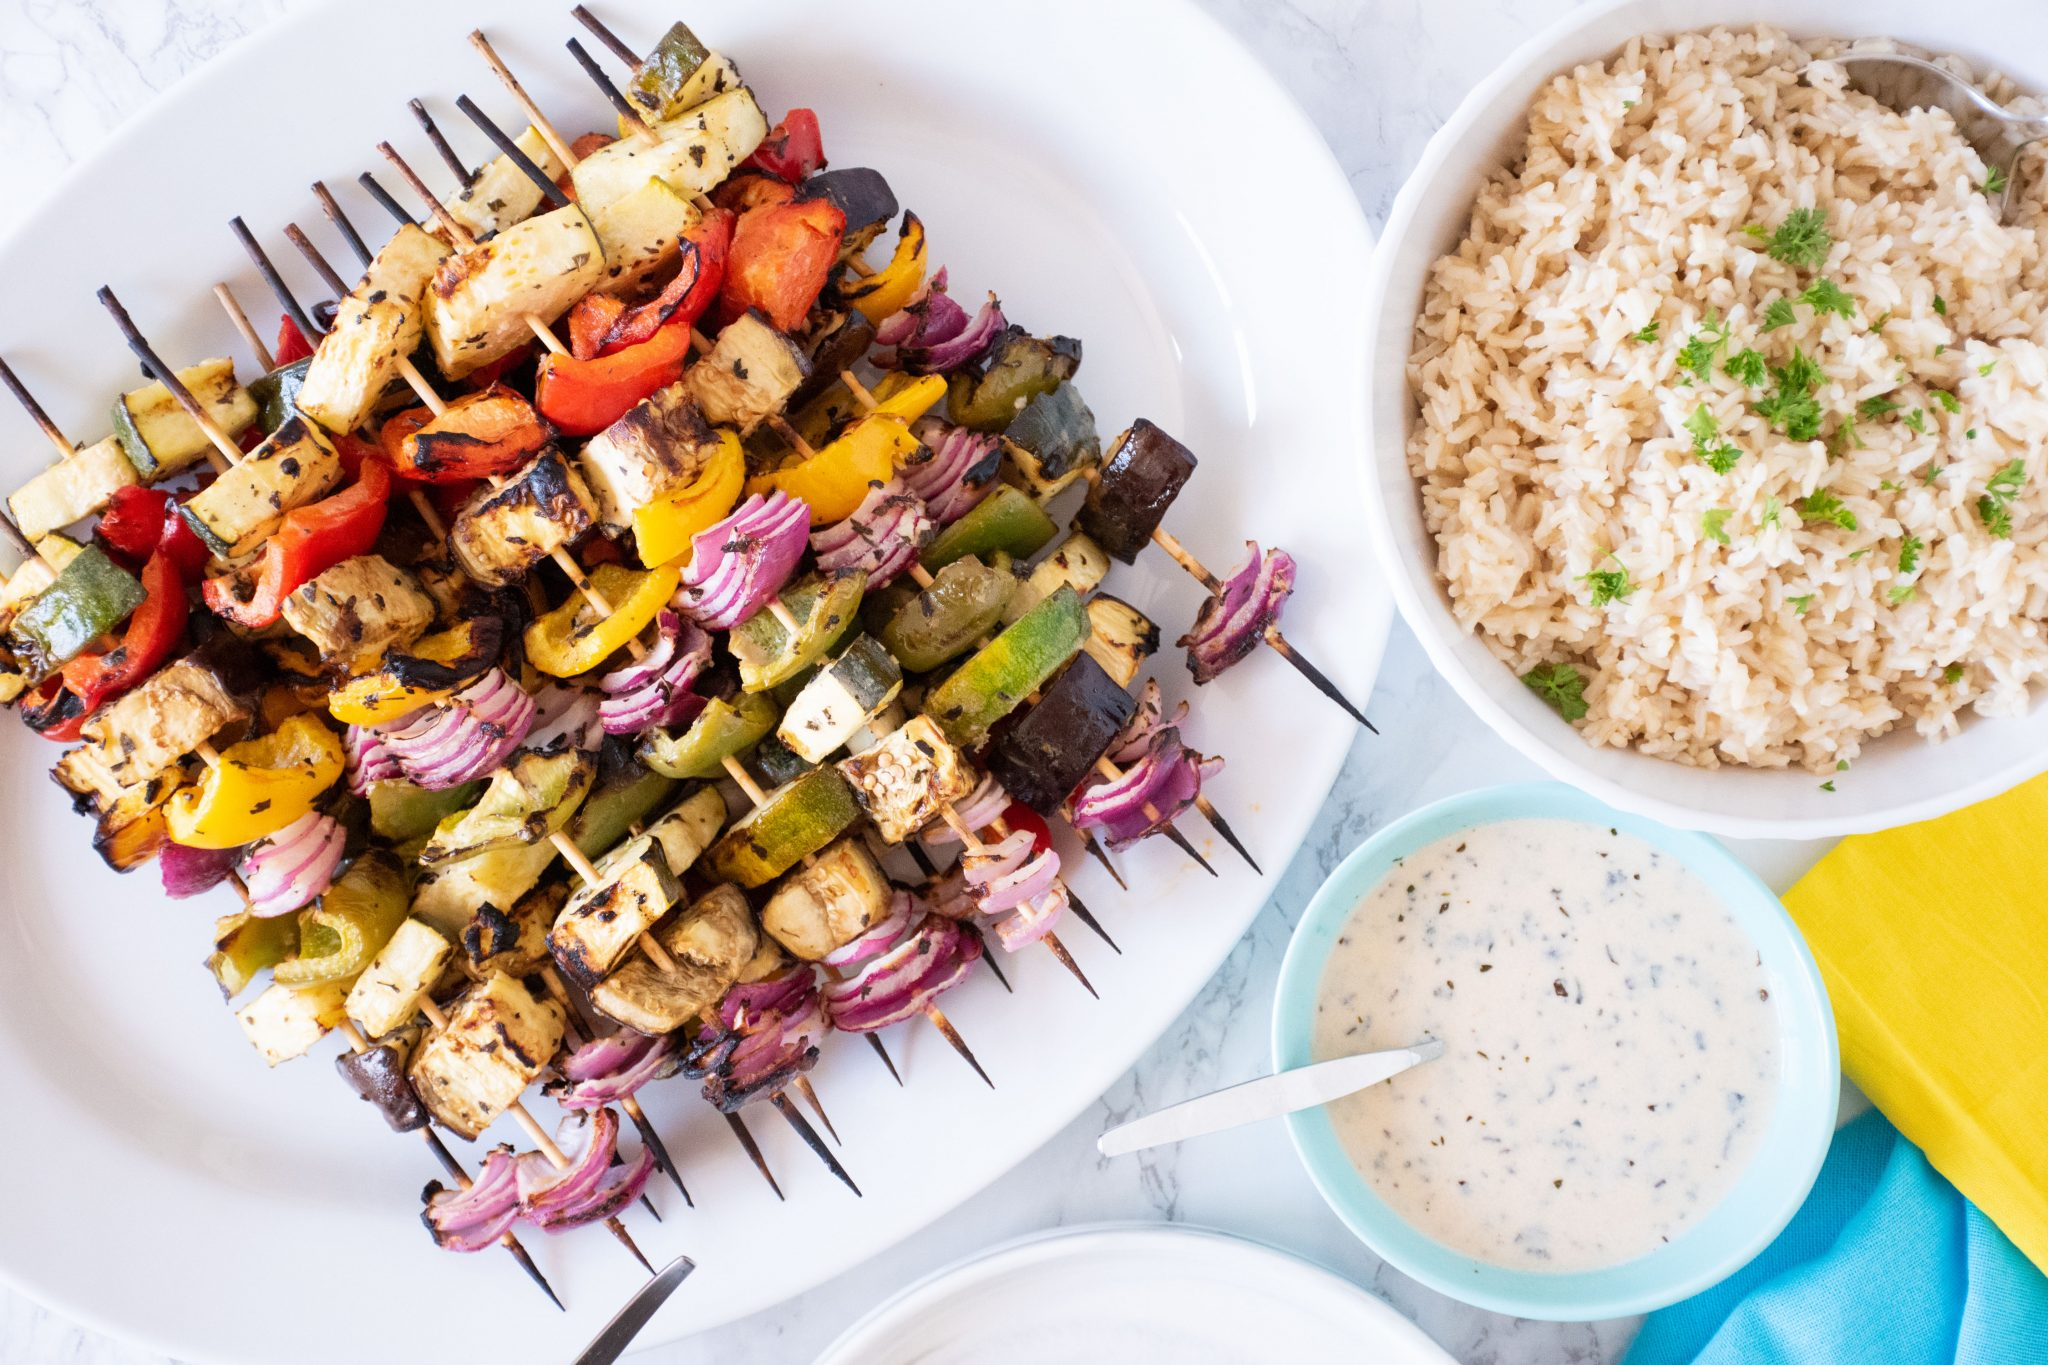 Serving platter with vegetable skewers piled on. A bowl of rice and marinade to the side.